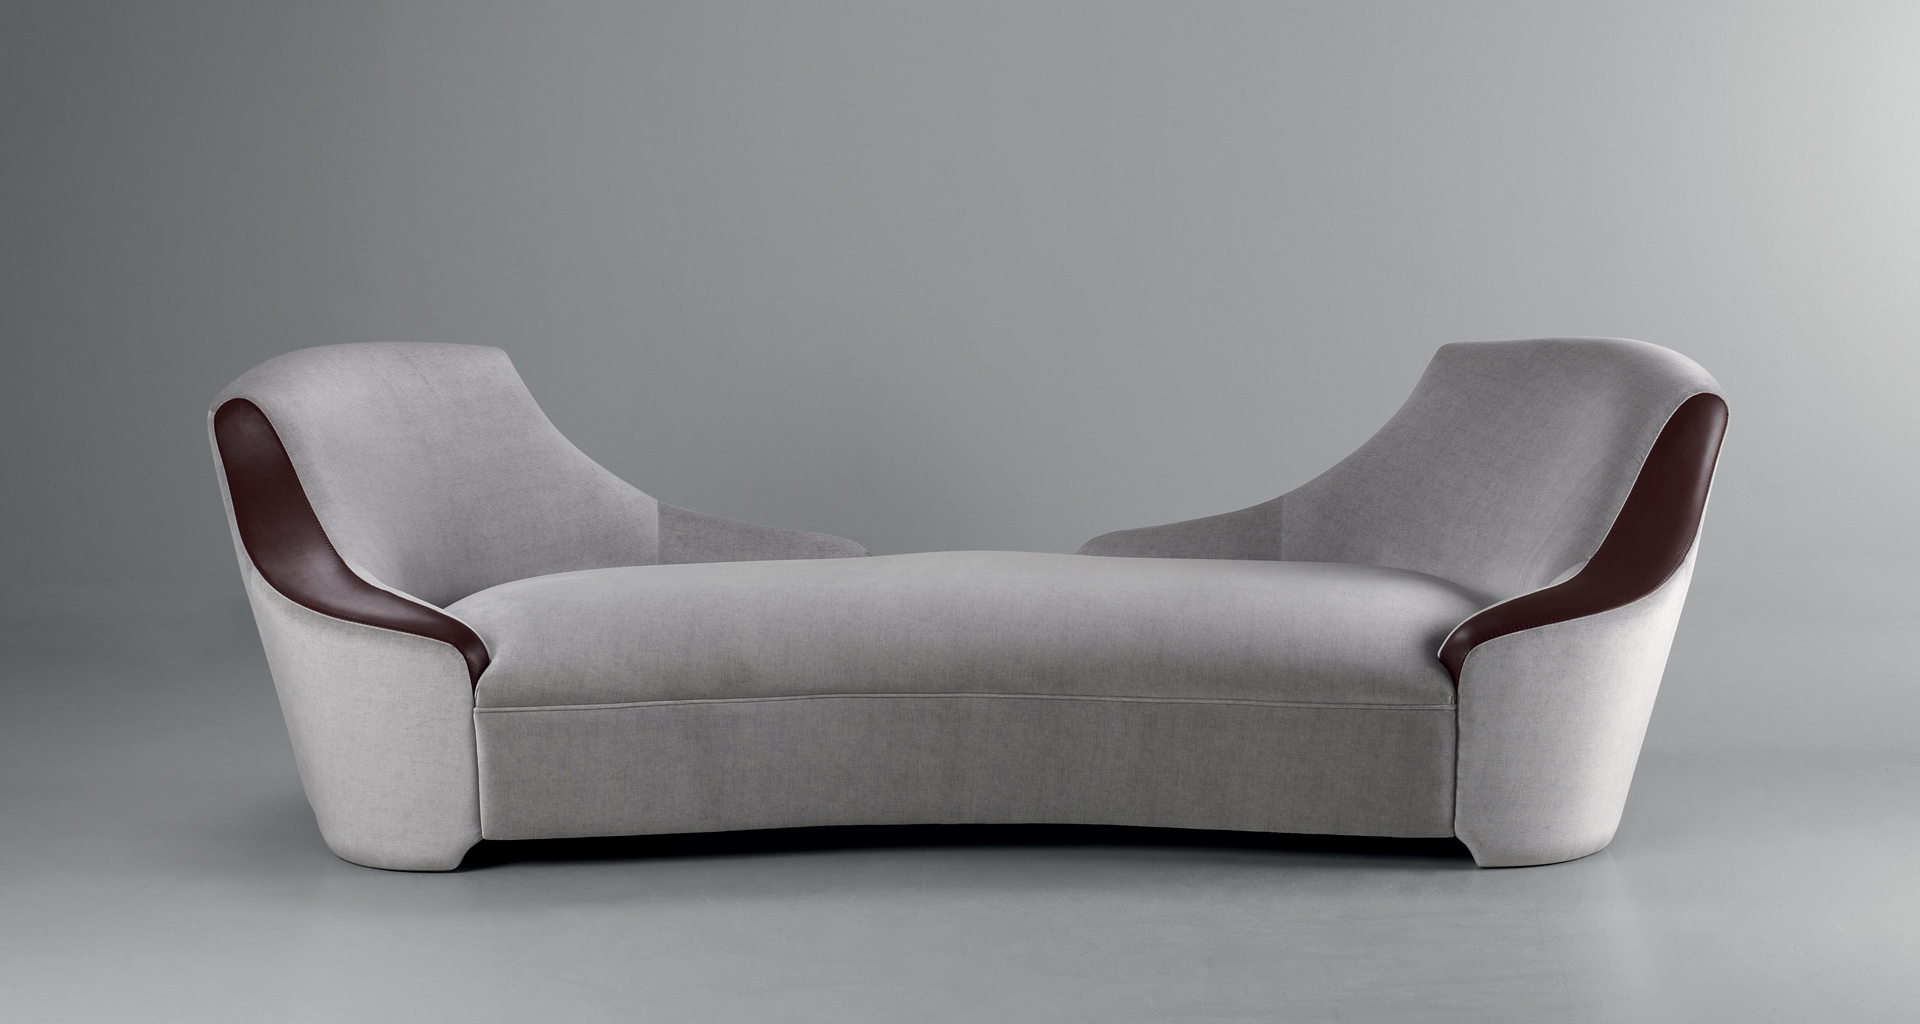 Gioconda is a chaise longue convered in fabric with leather details, from Promemoria's catalogue | Promemoria